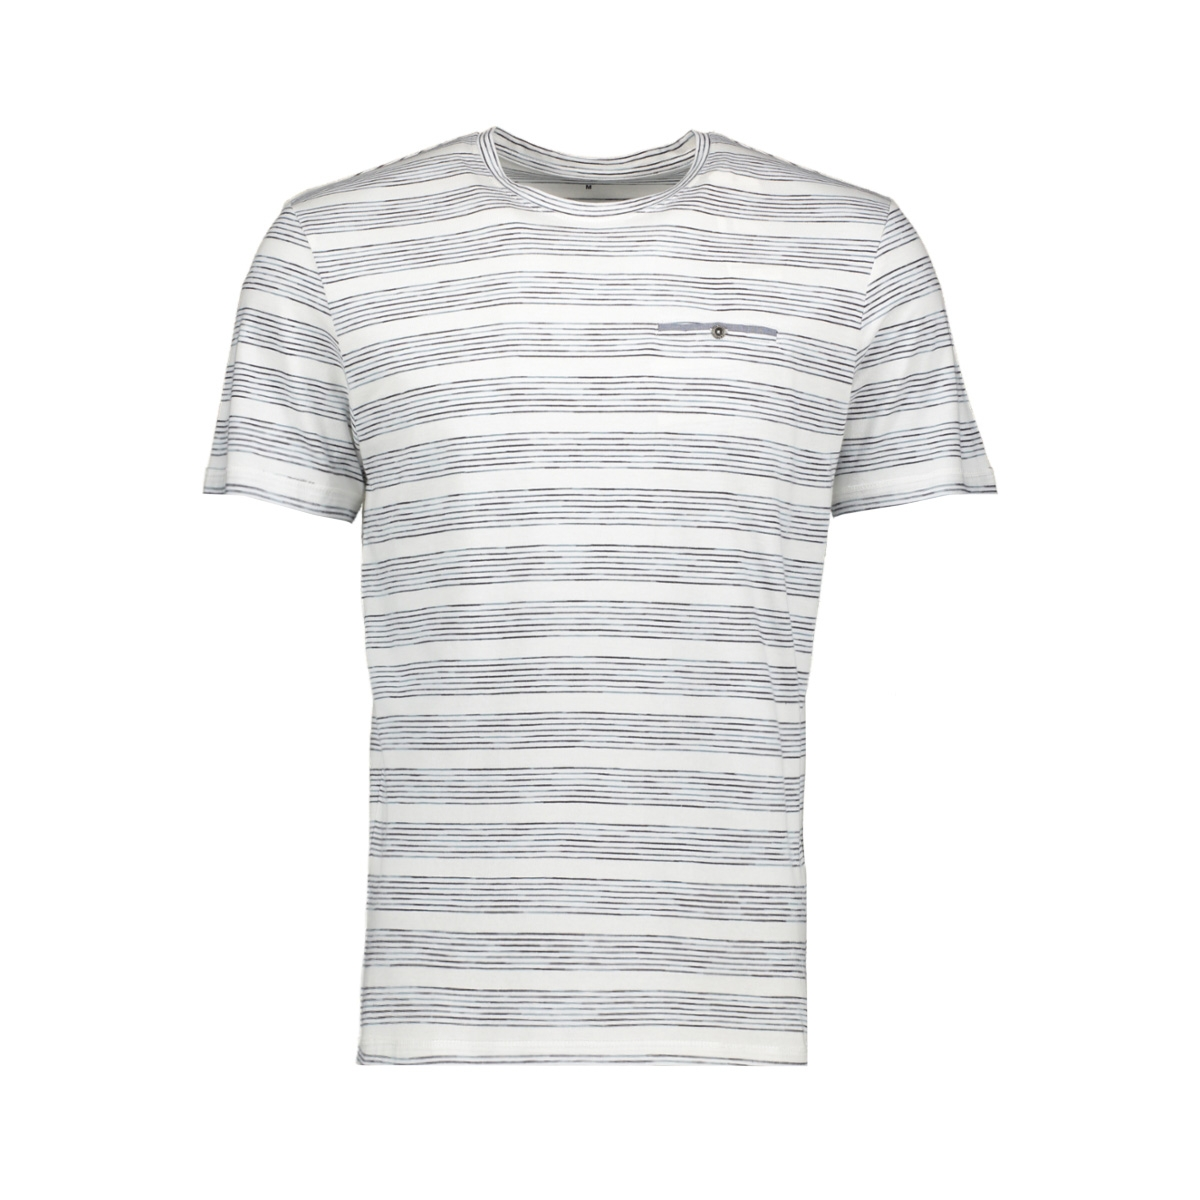 striped t-shirt with pocket 1009904xx10 tom tailor t-shirt 16982